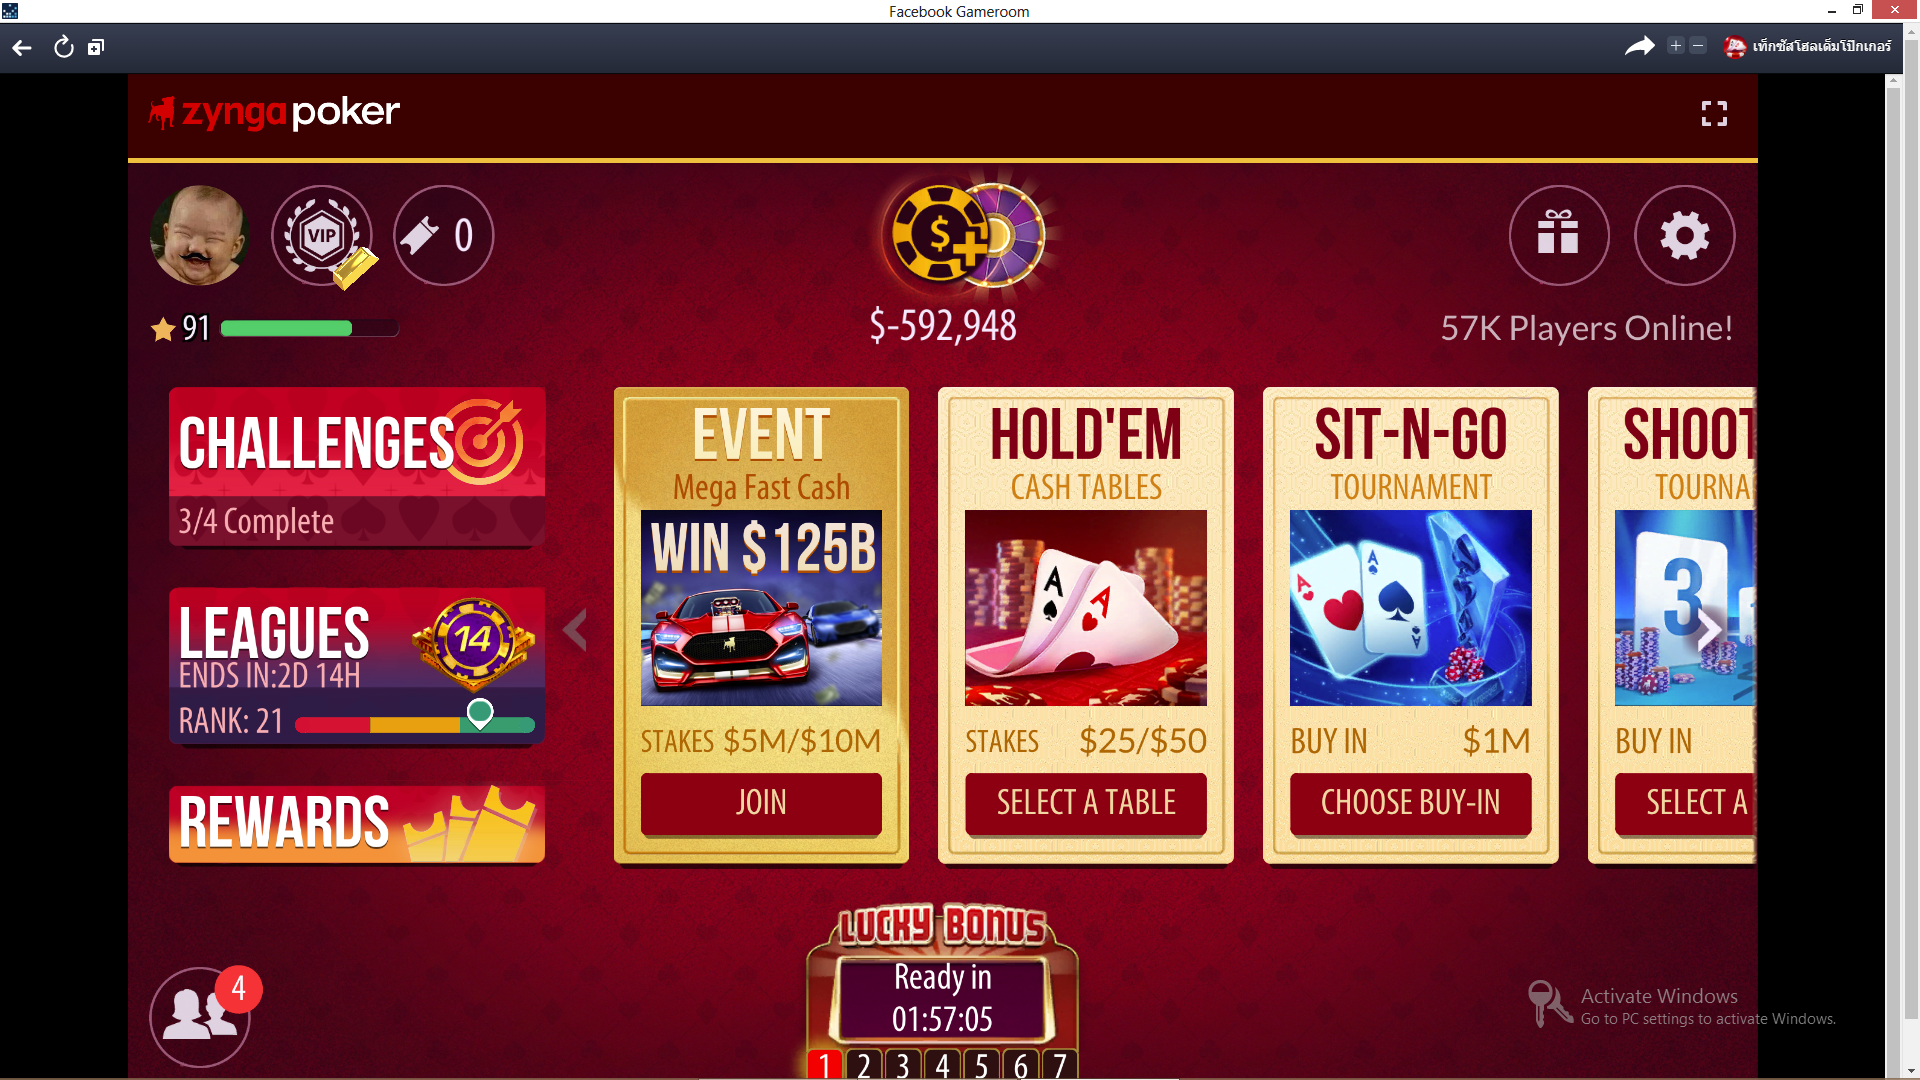 Suspect of chip being stolen — Zynga Poker